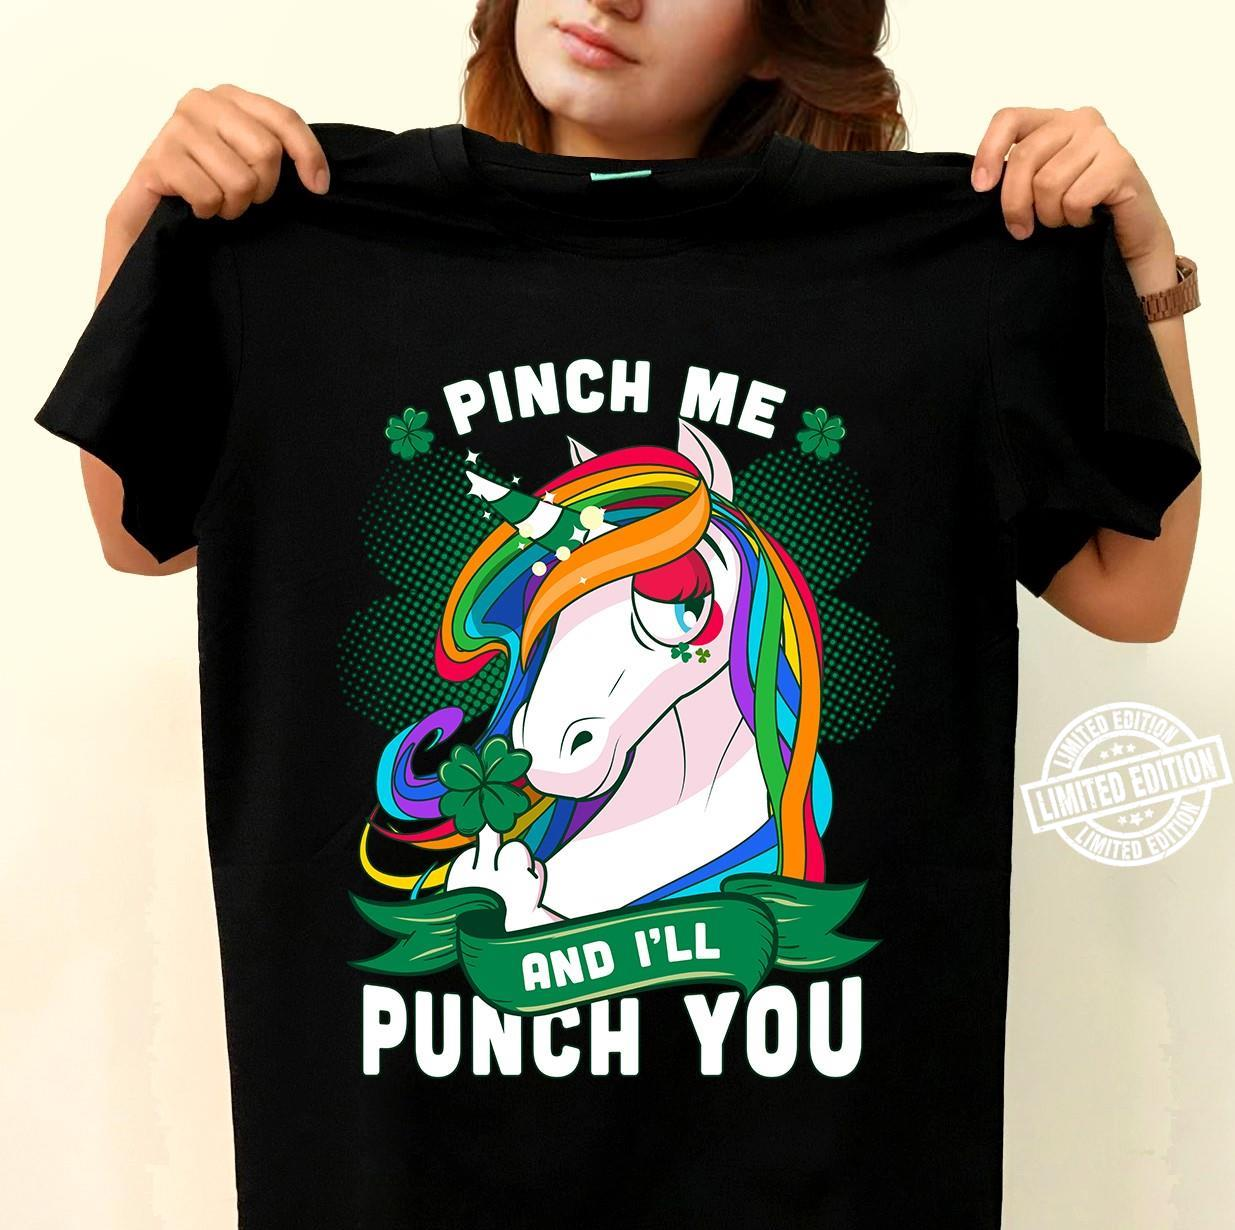 Pinch me and I'll punch you shirt